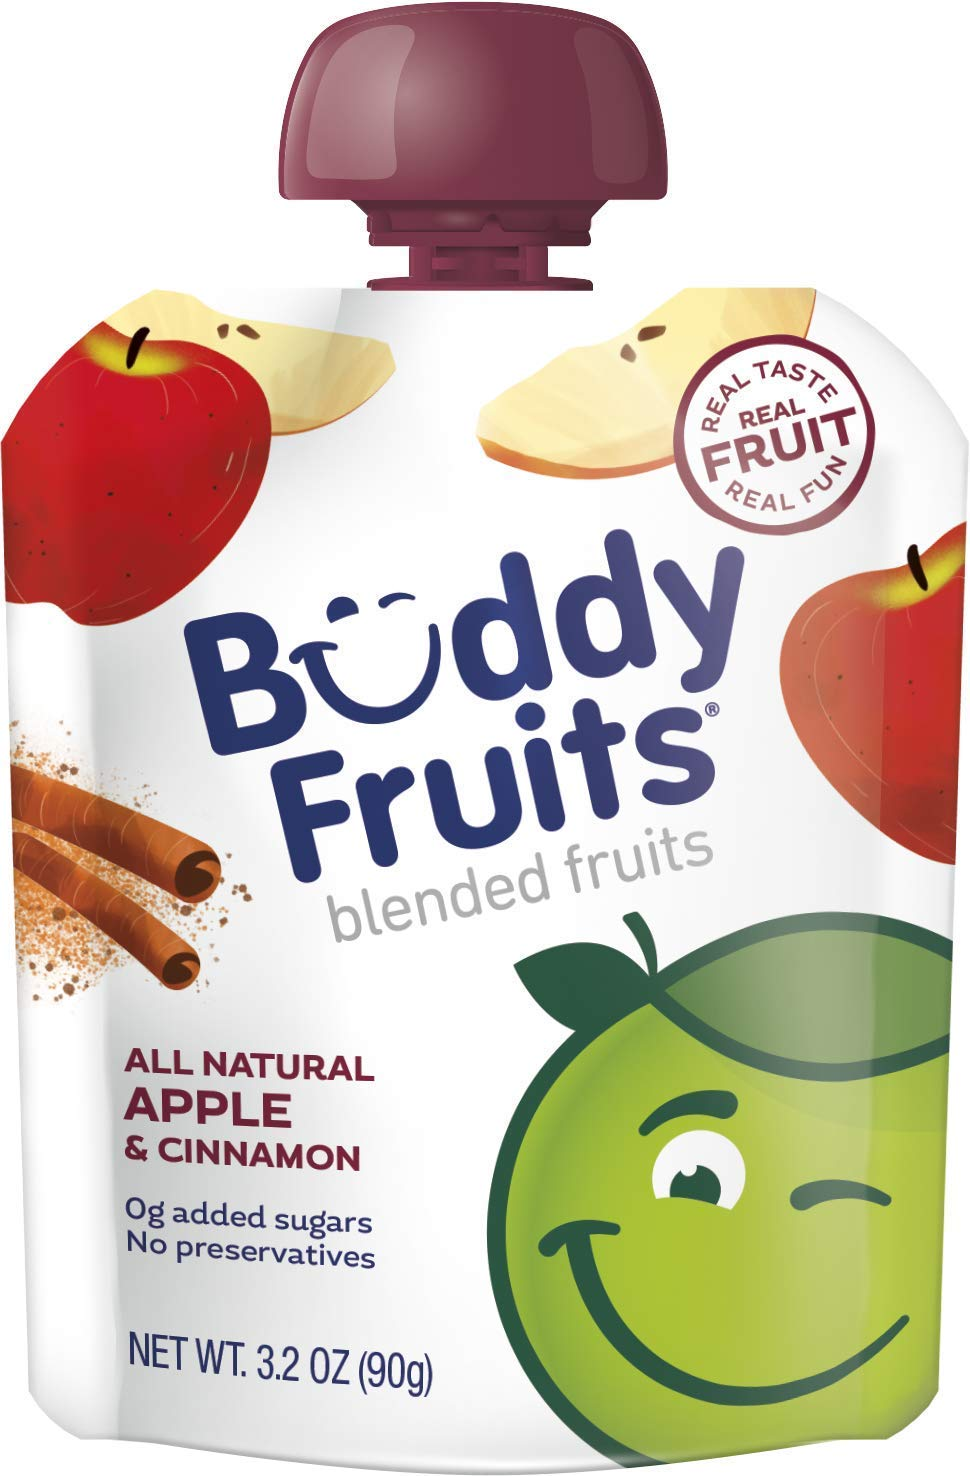 Buddy Fruits Pure Blended Fruit To Go Apple and Cinnamon Applesauce | 100% Real Fruit | No Sugar, Non GMO, Vegan, Gluten Free, No Preservatives, BPA Free , Certified Kosher | 3.2oz Pouch 18 Pack